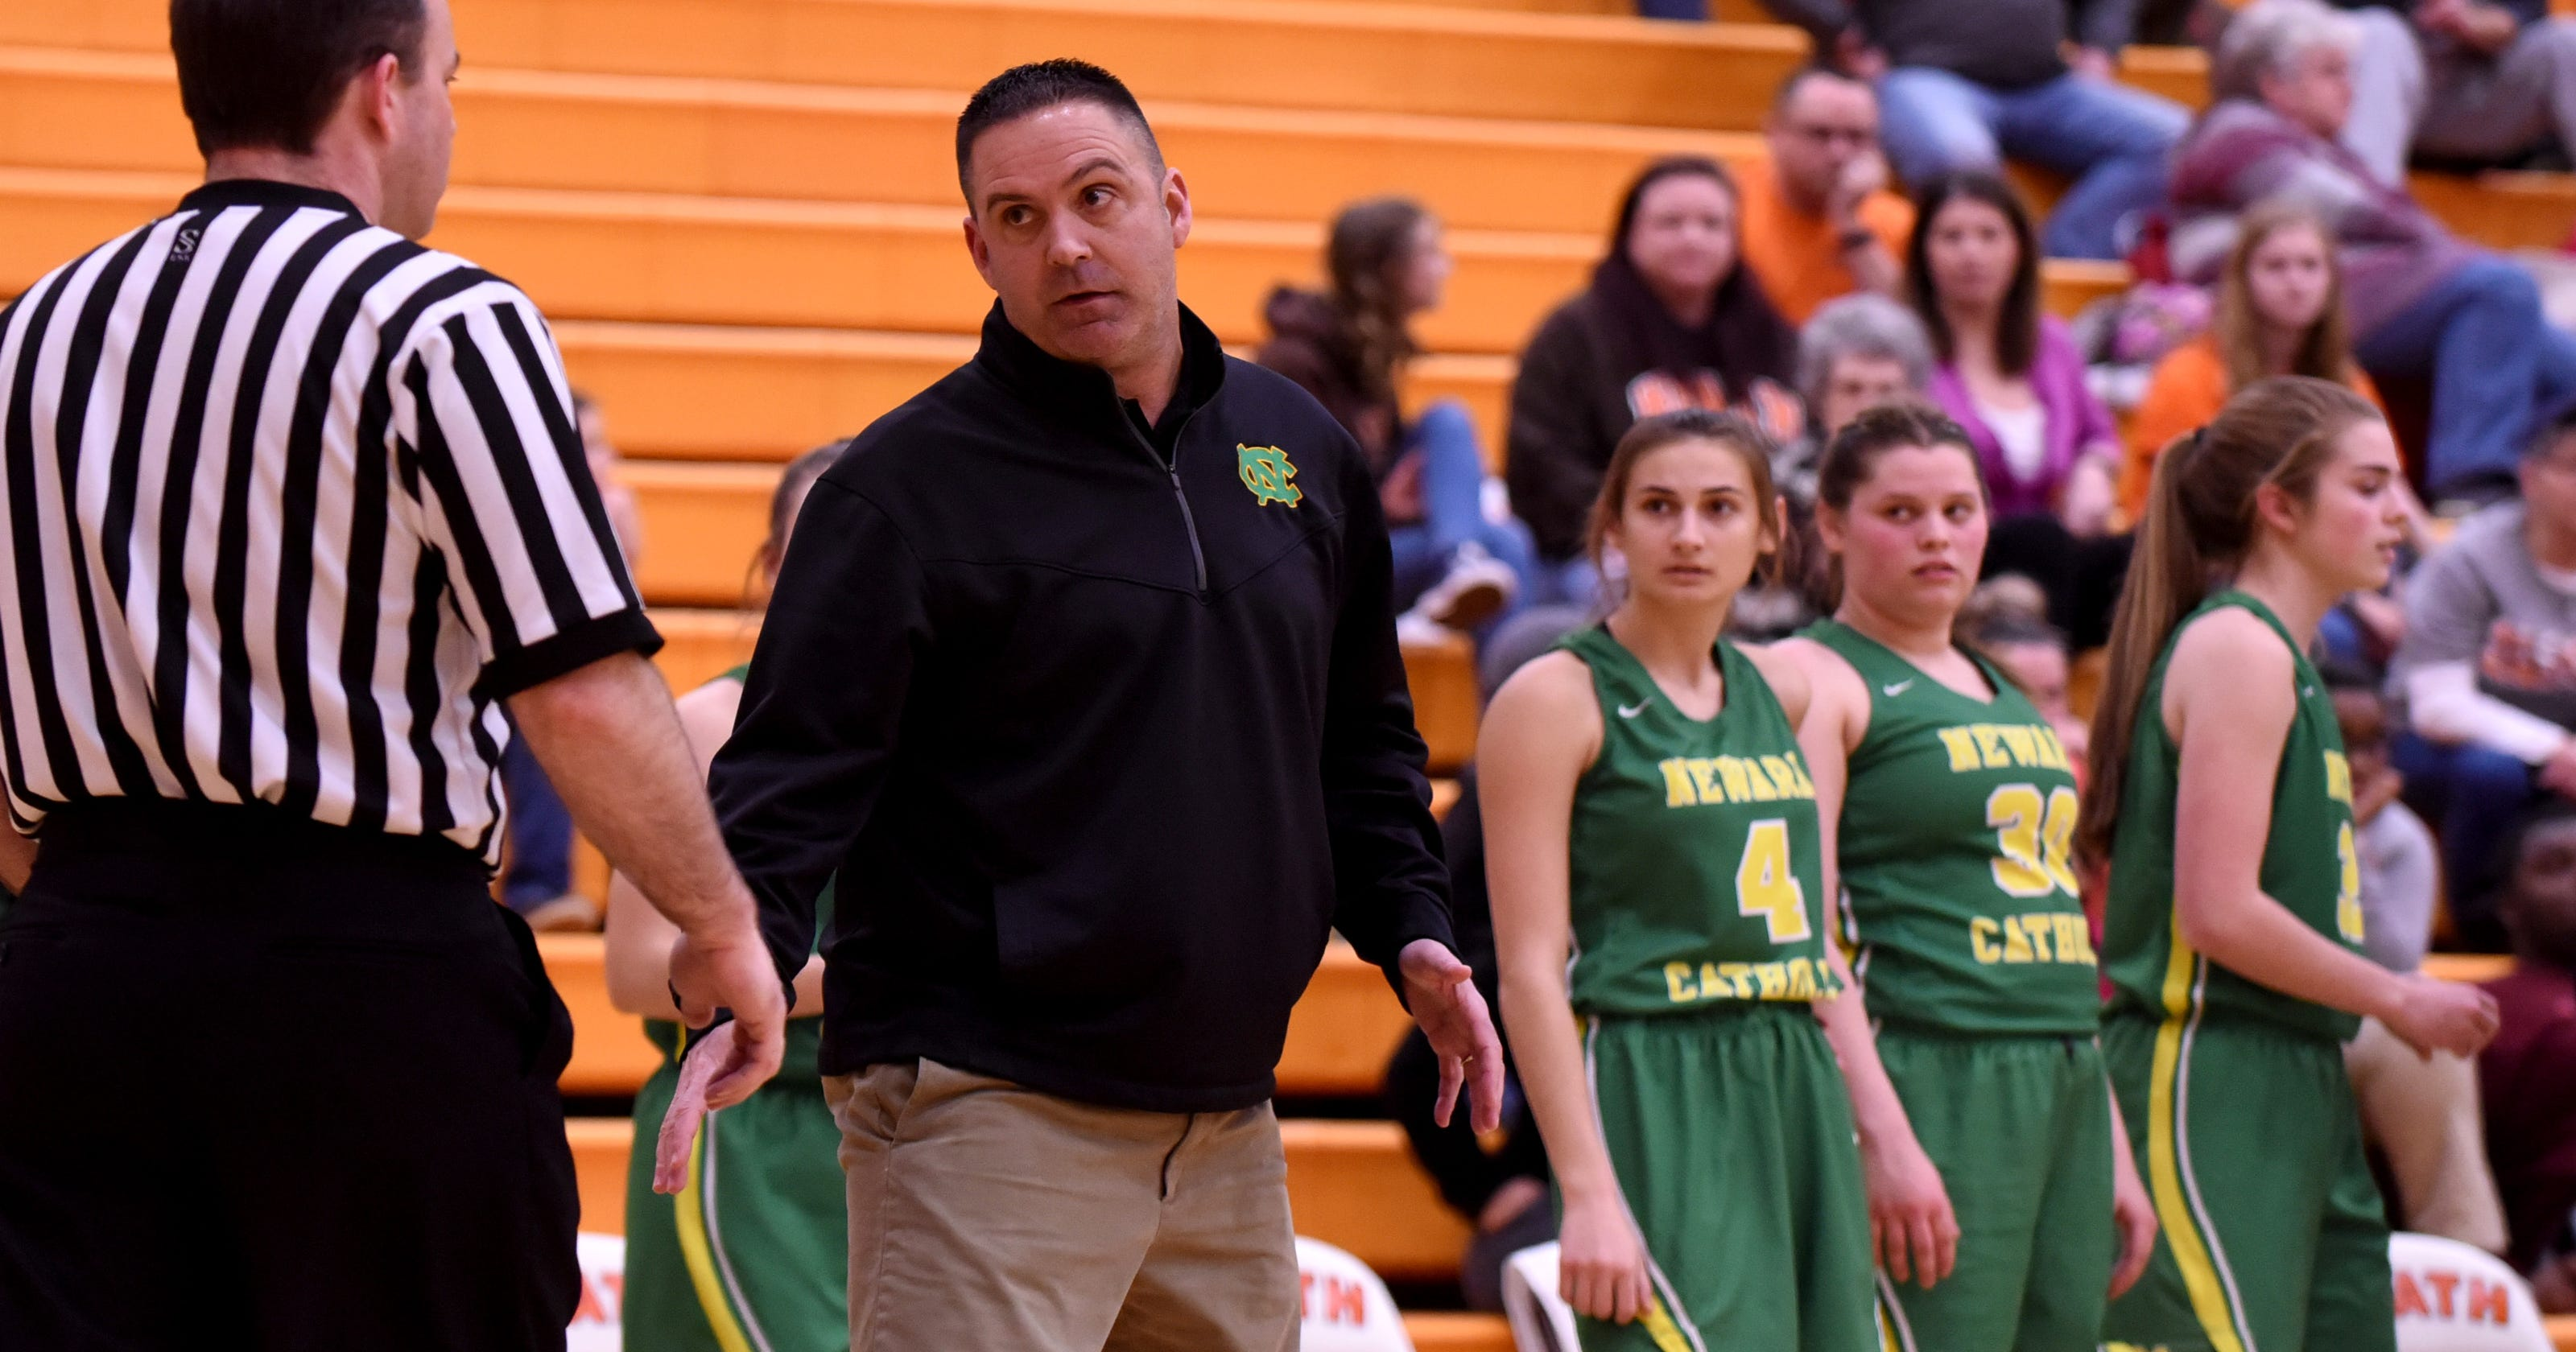 Newark Catholic's Rob Smith receives Central District honor